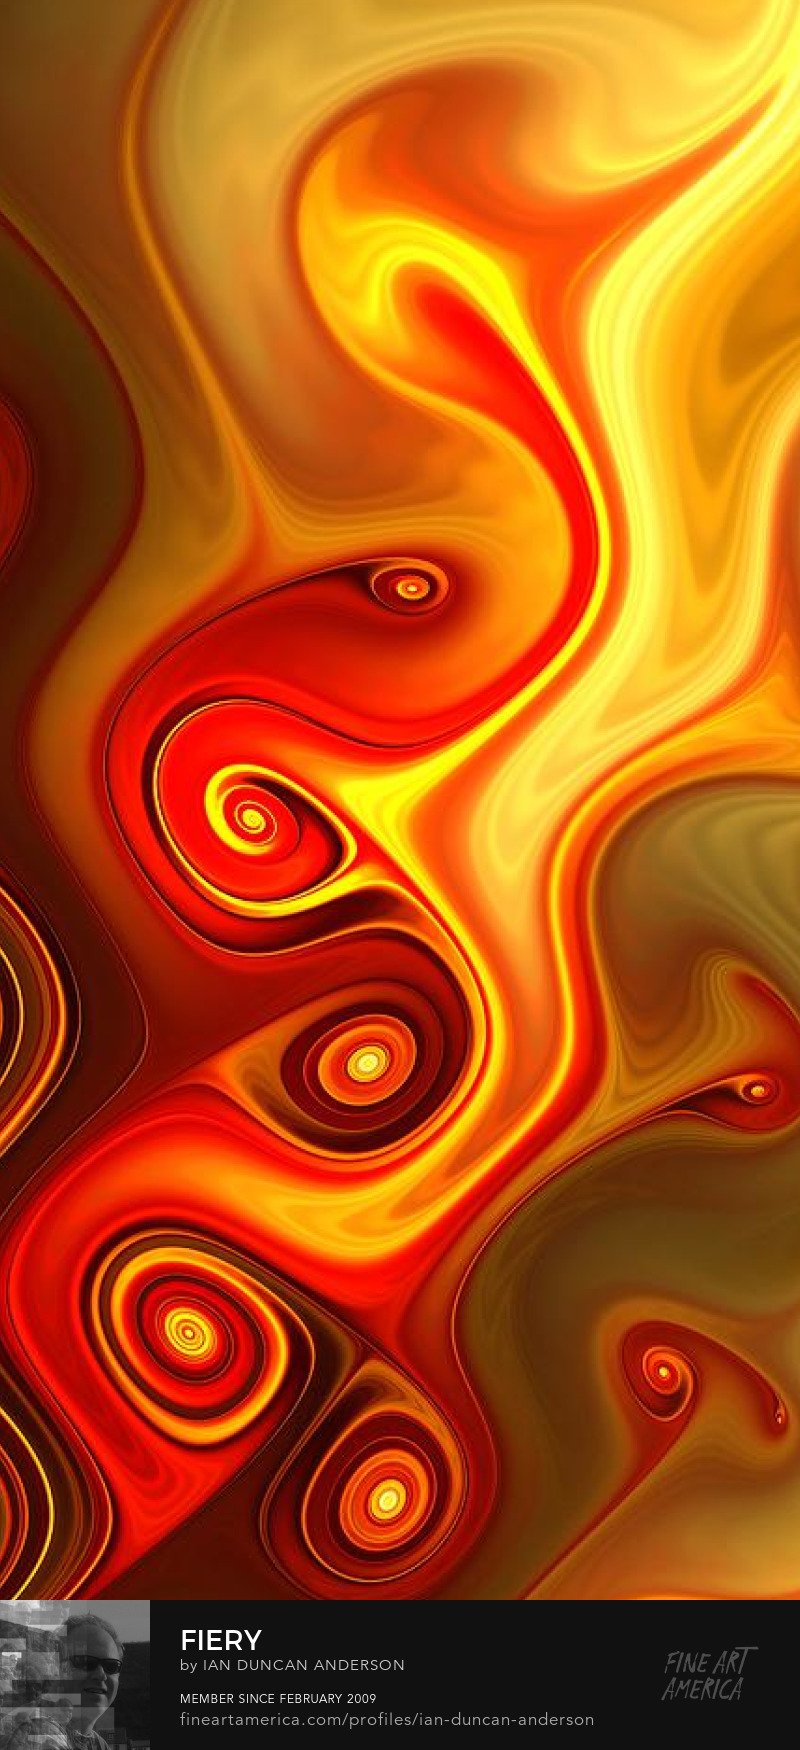 buy print of 'Fiery' at Fine Art America